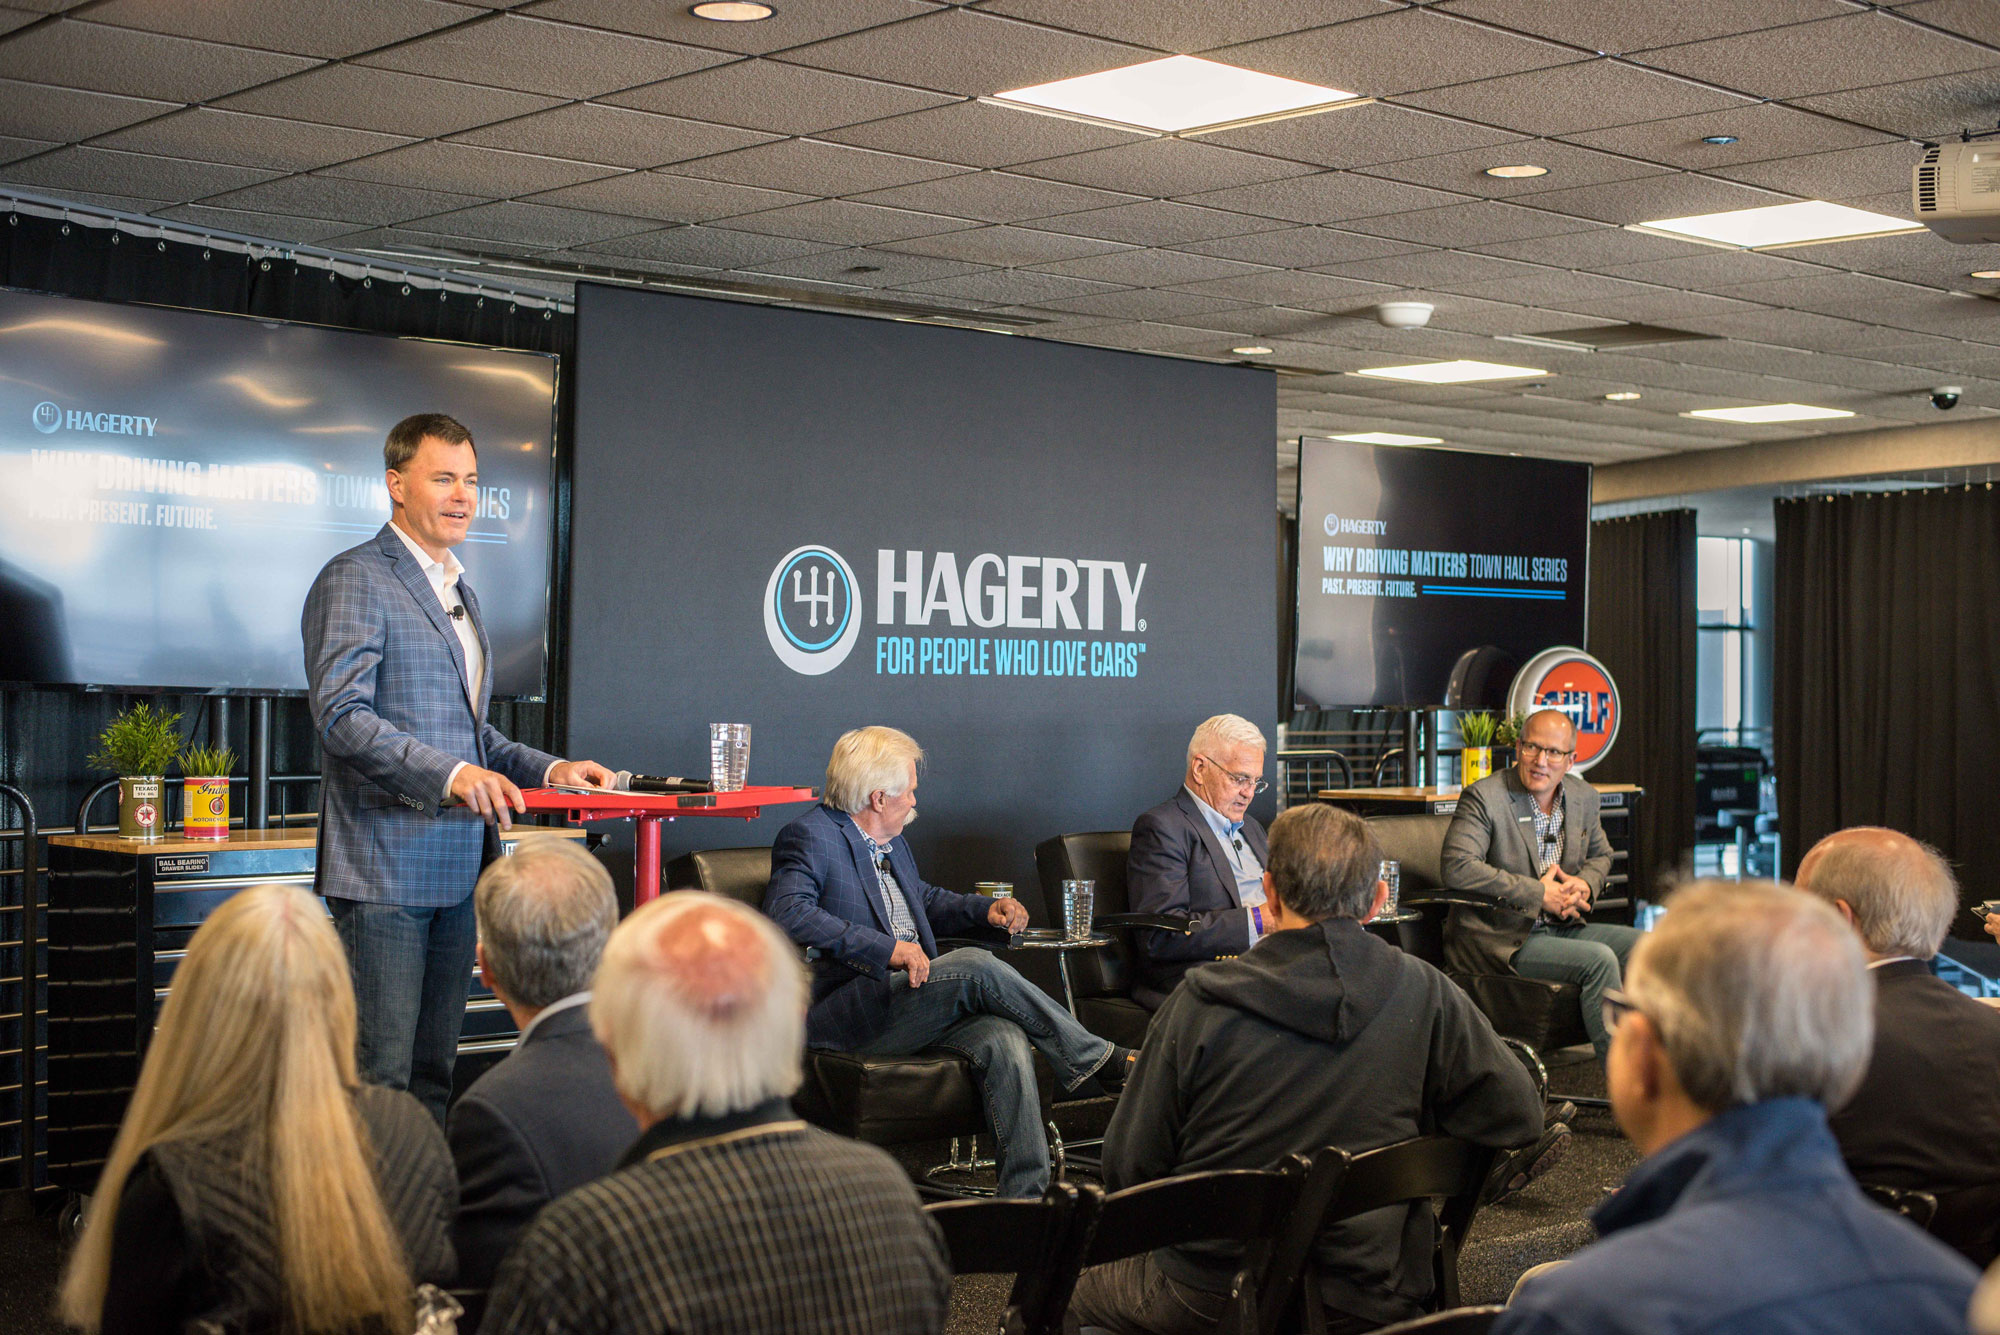 Hagerty Seminar for people who love cars